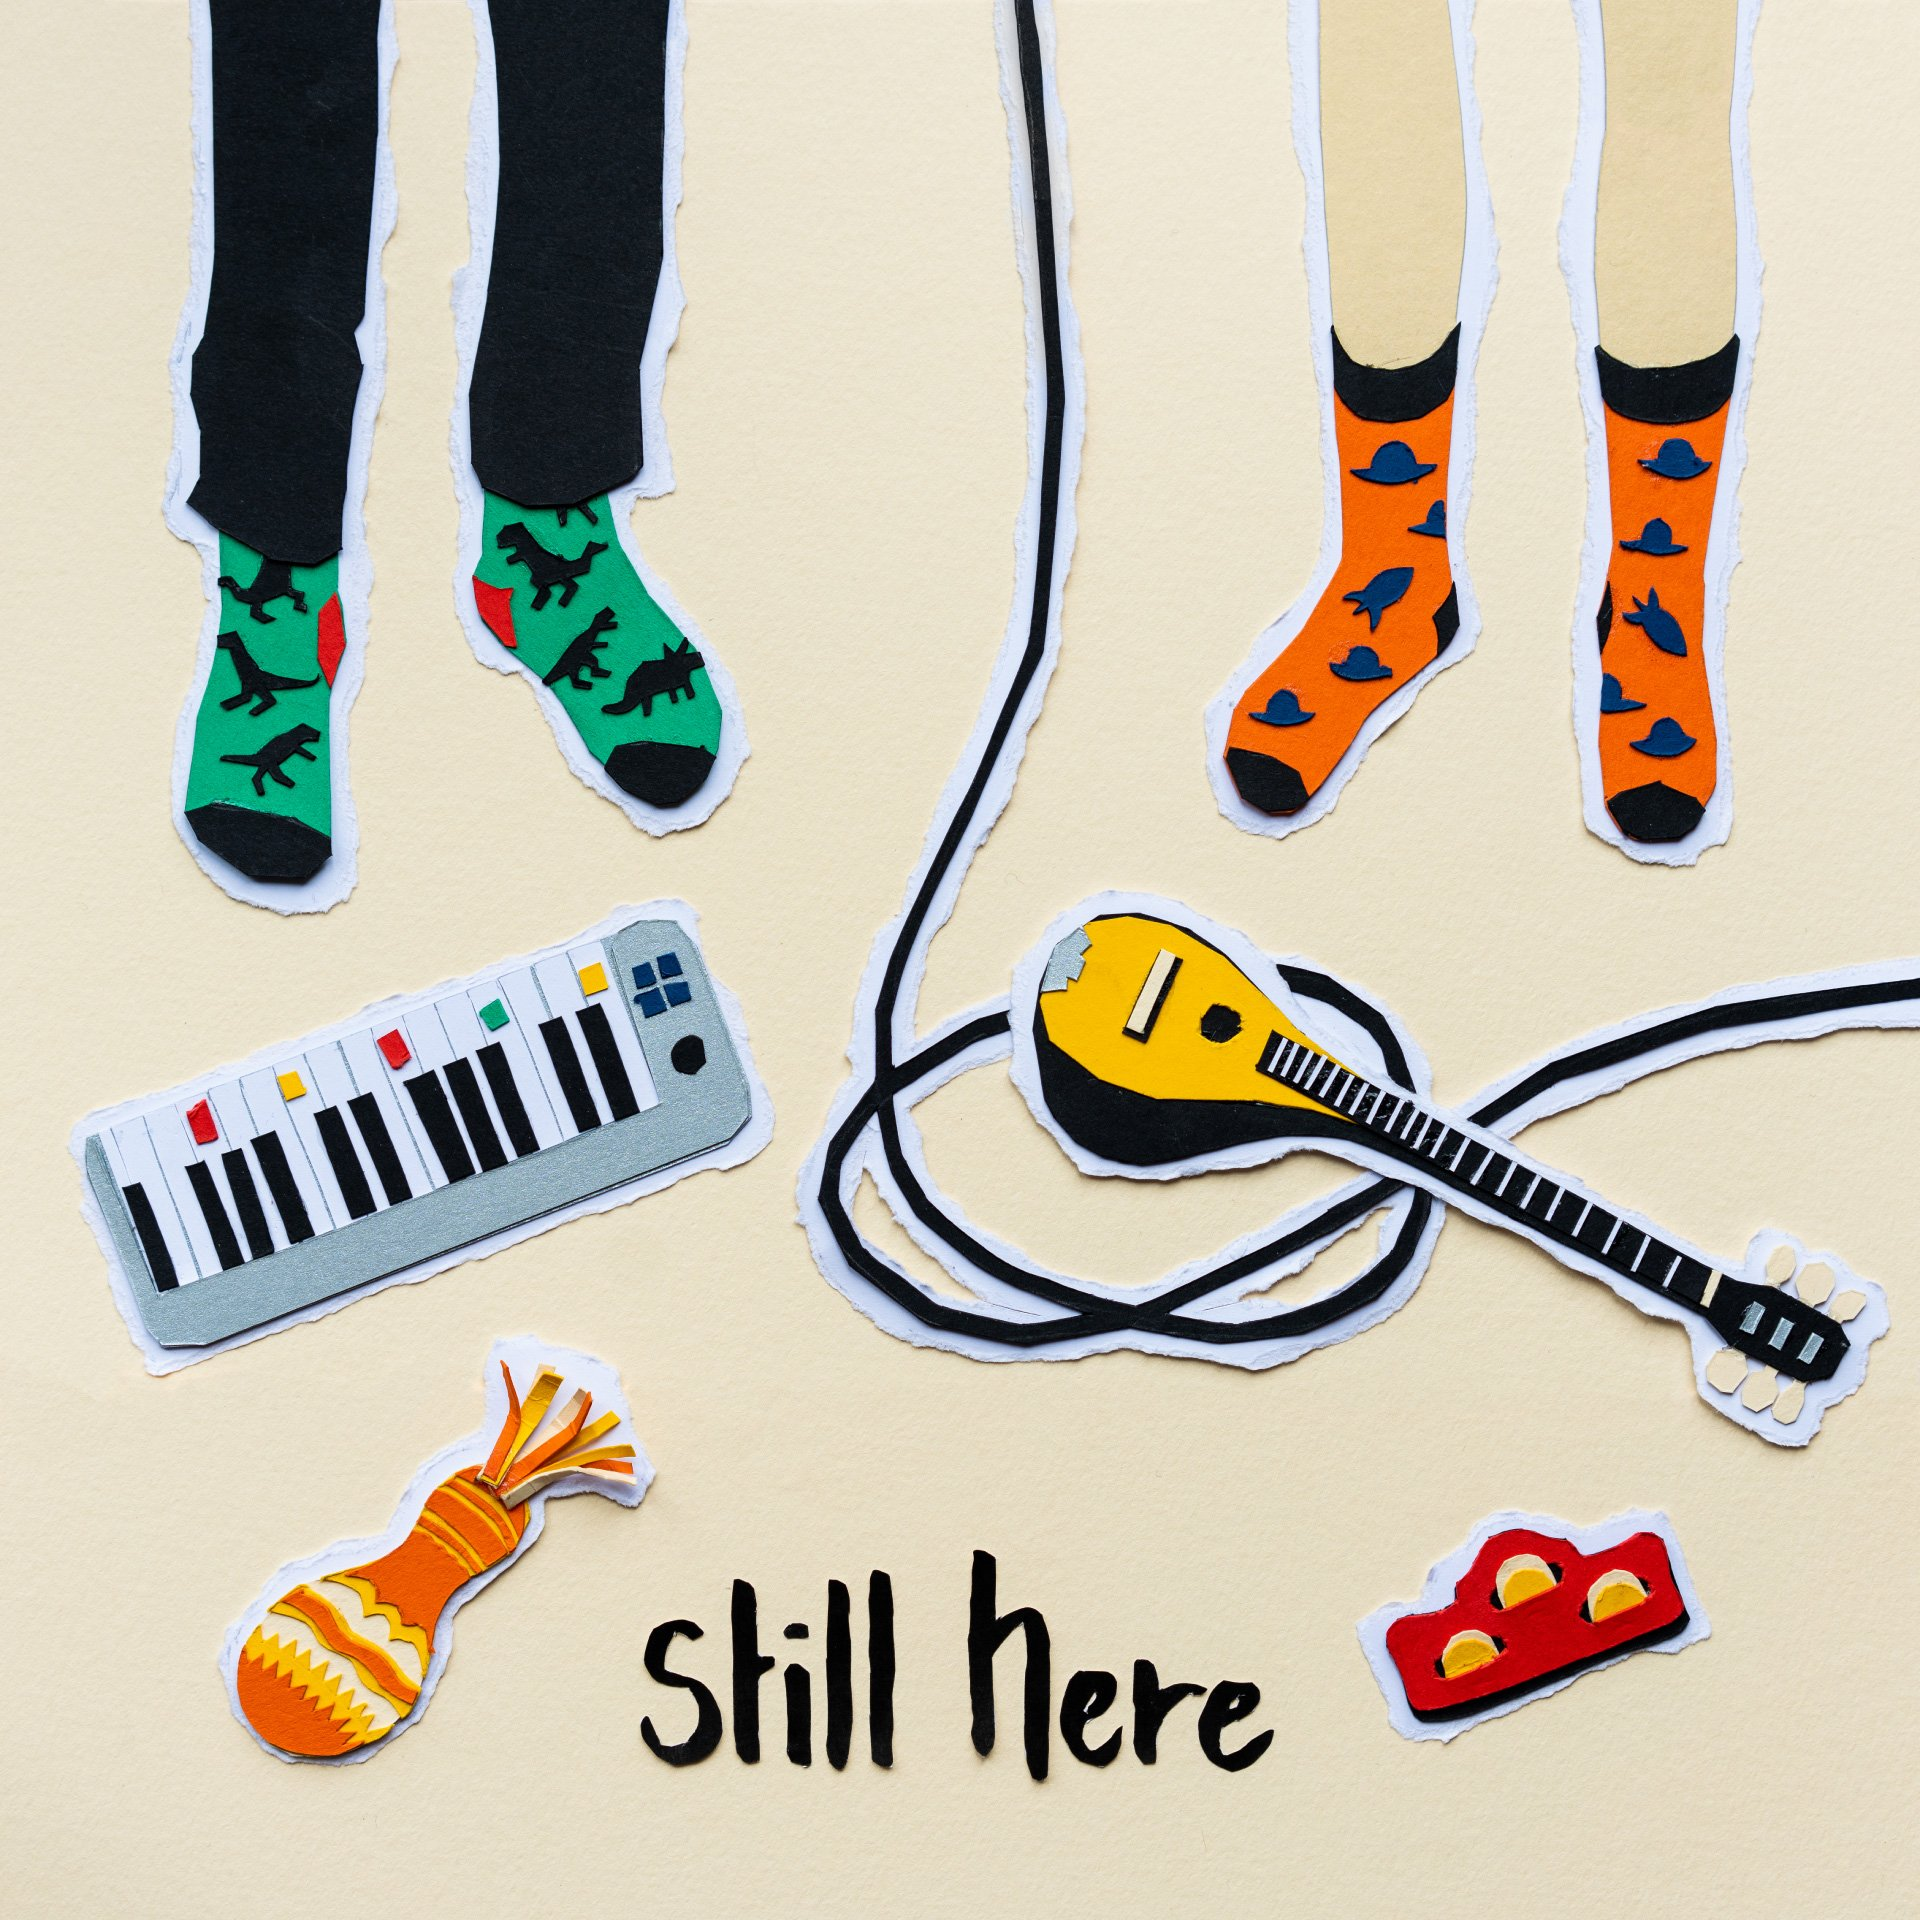 Still Here // Charlie + Jake's Debut Single Out Now